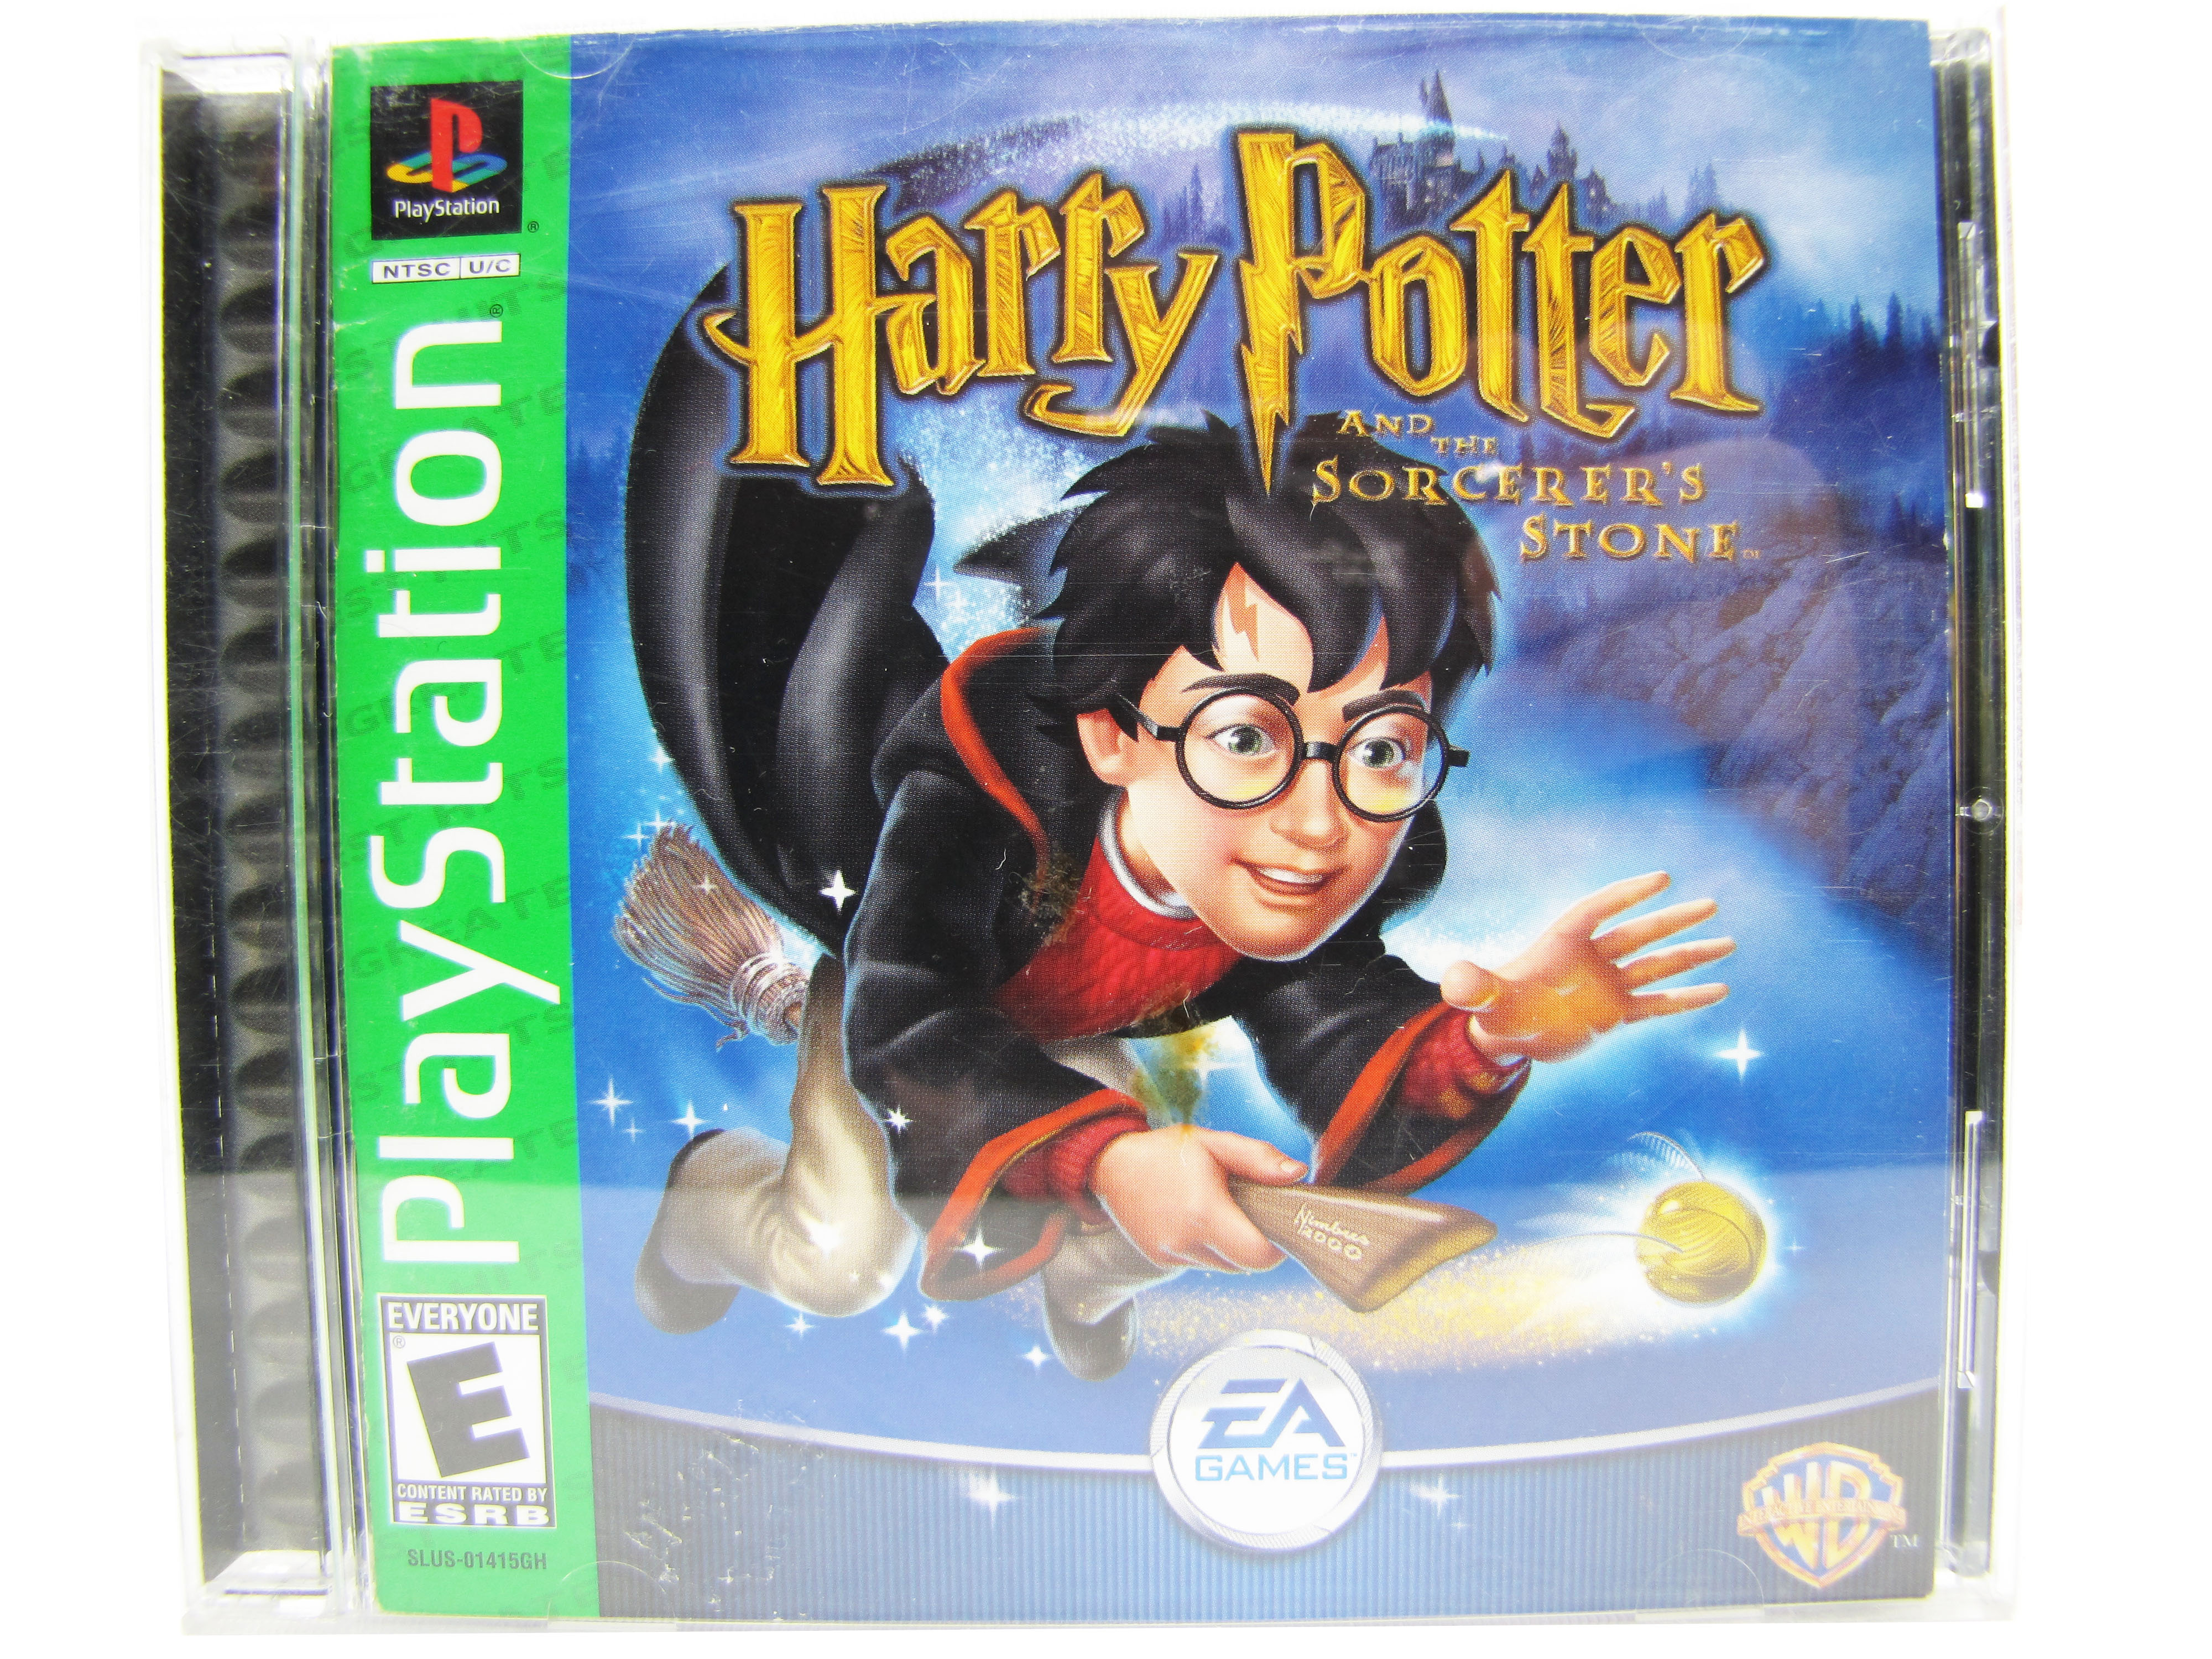 PS1 Harry Potter and the Sorcerer's Stone Complete - 2001